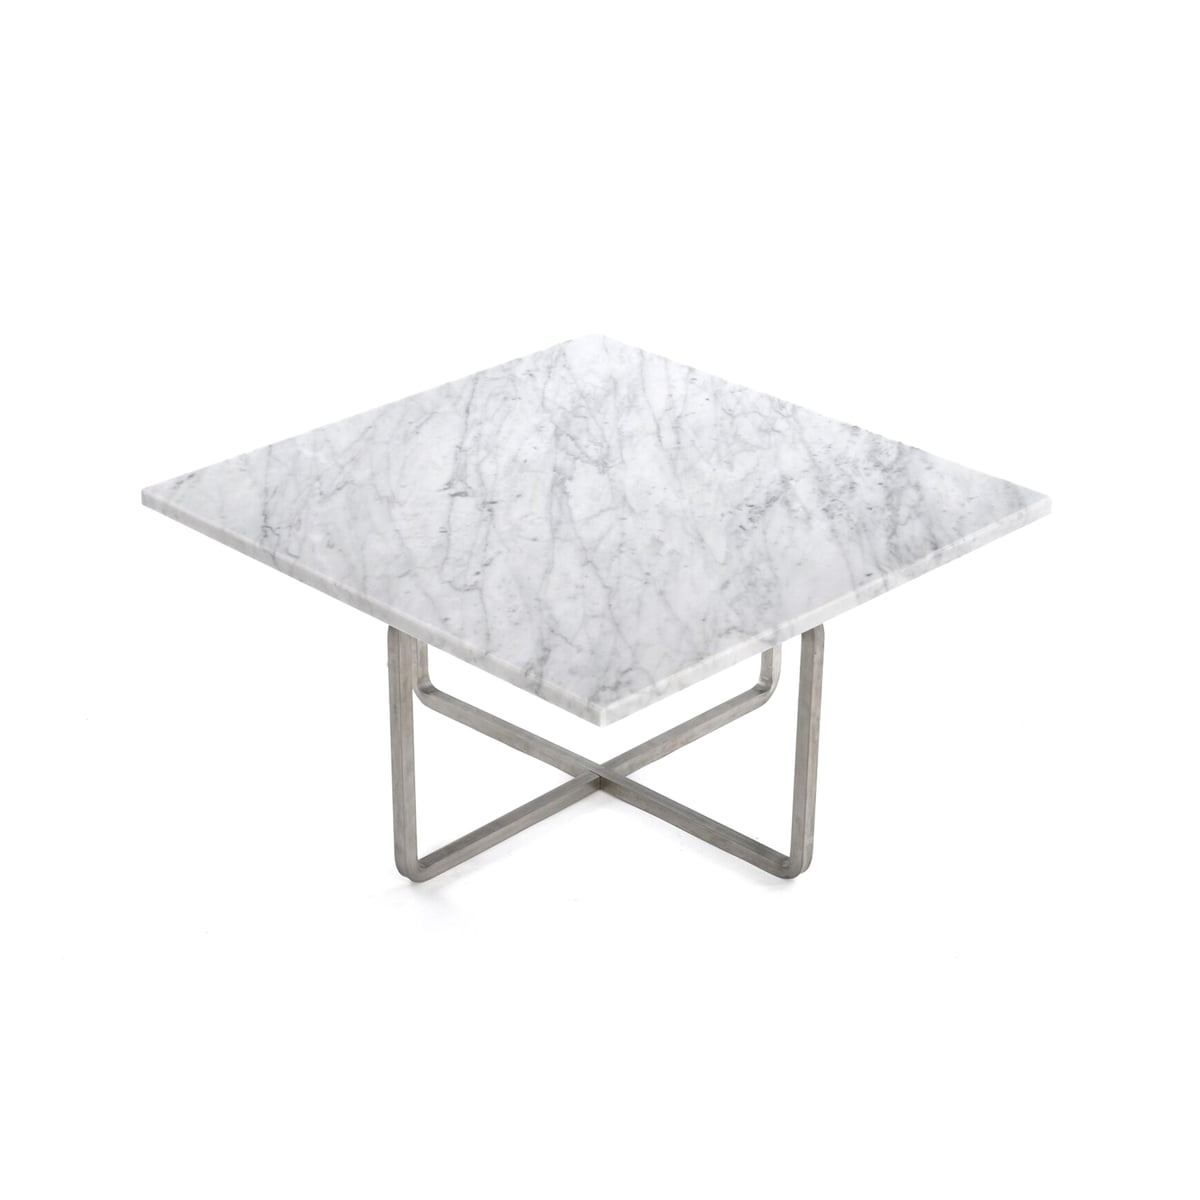 White Marble Coffee Table.Ox Denmarq Ninety Coffee Table 60 X 60 Cm Stainless Steel White Marble